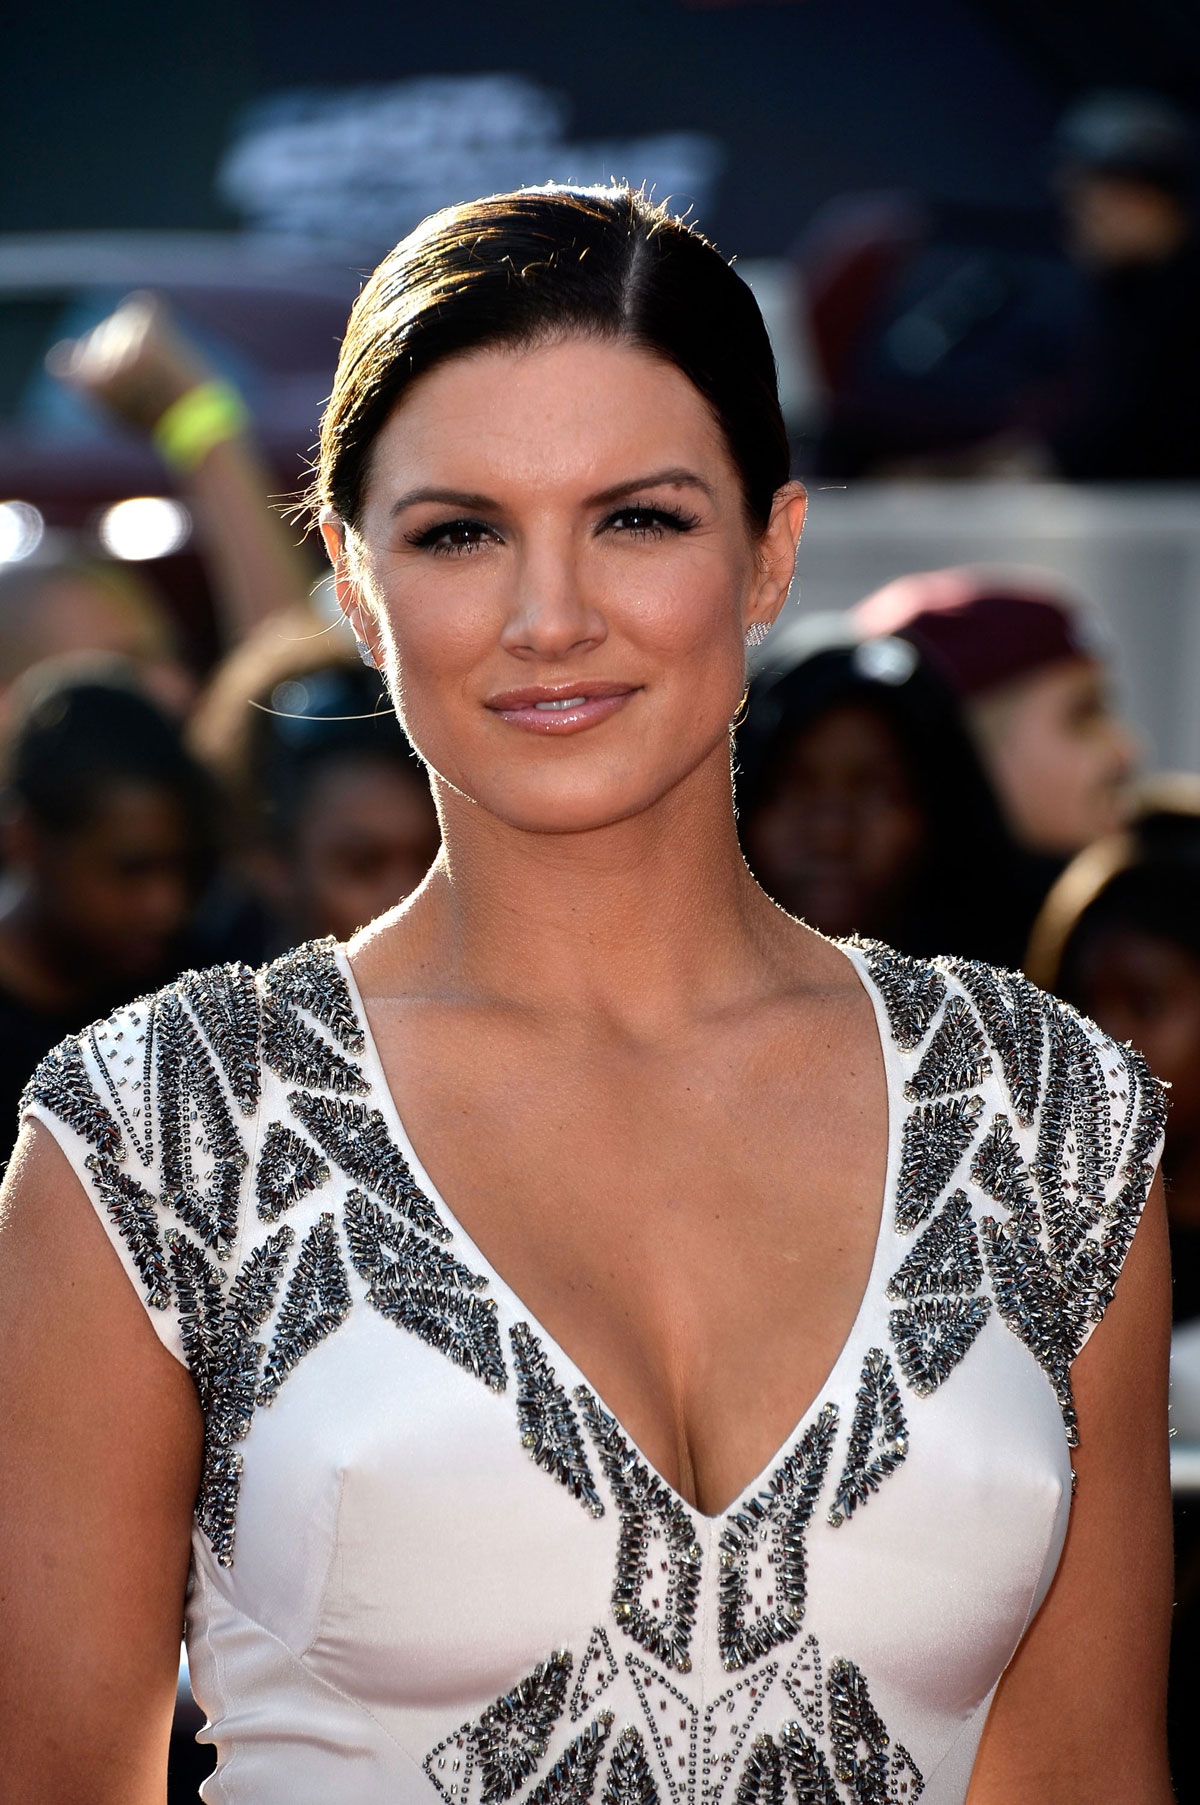 Gina Carano mixed martial arts Gina Carano mixed martial arts new pics